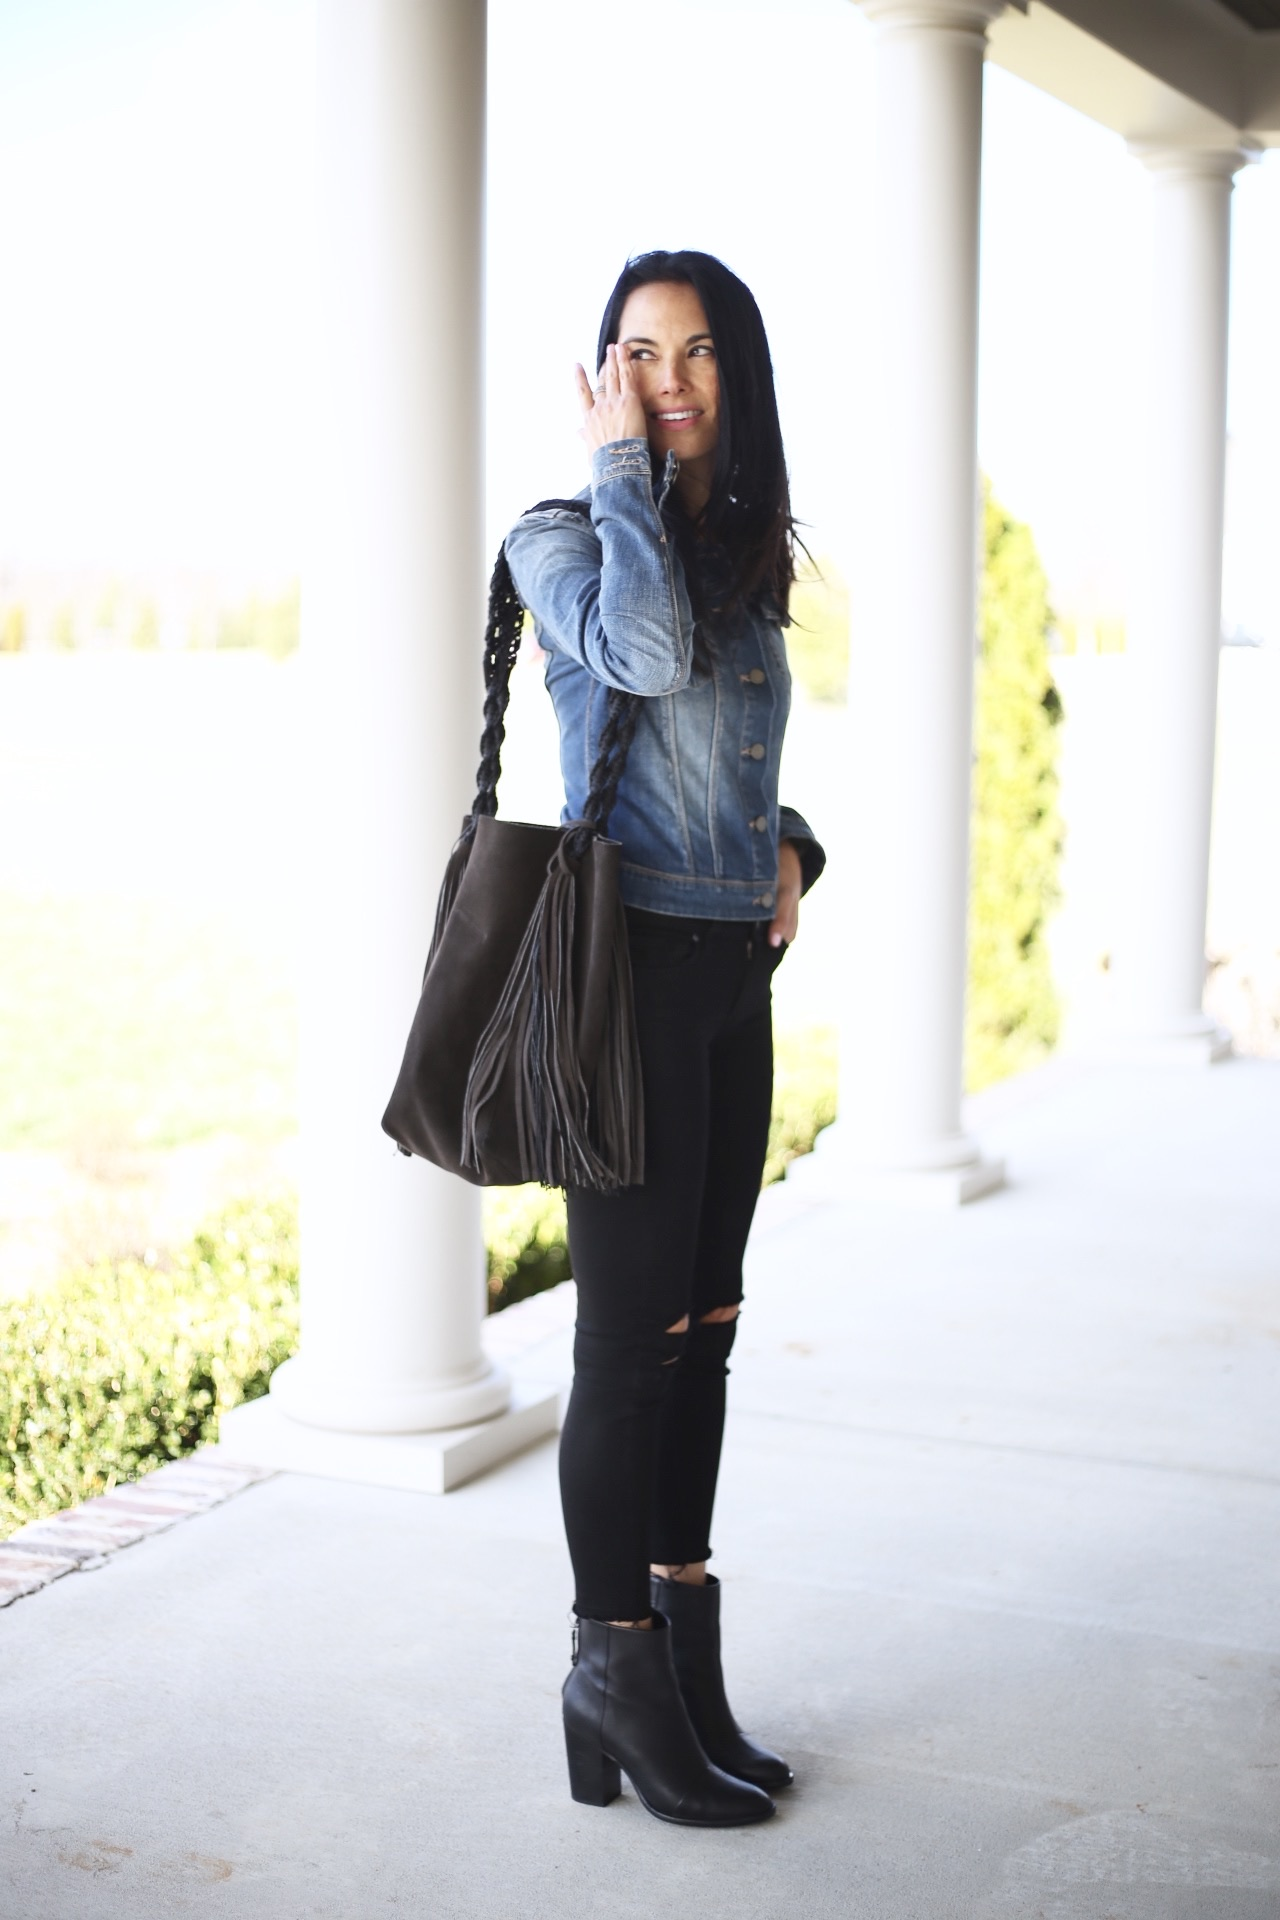 Handbag  similar  | destructed  denim  | denim jacket  similar  | boots  similar  sale | photo by Sydney Clawson |